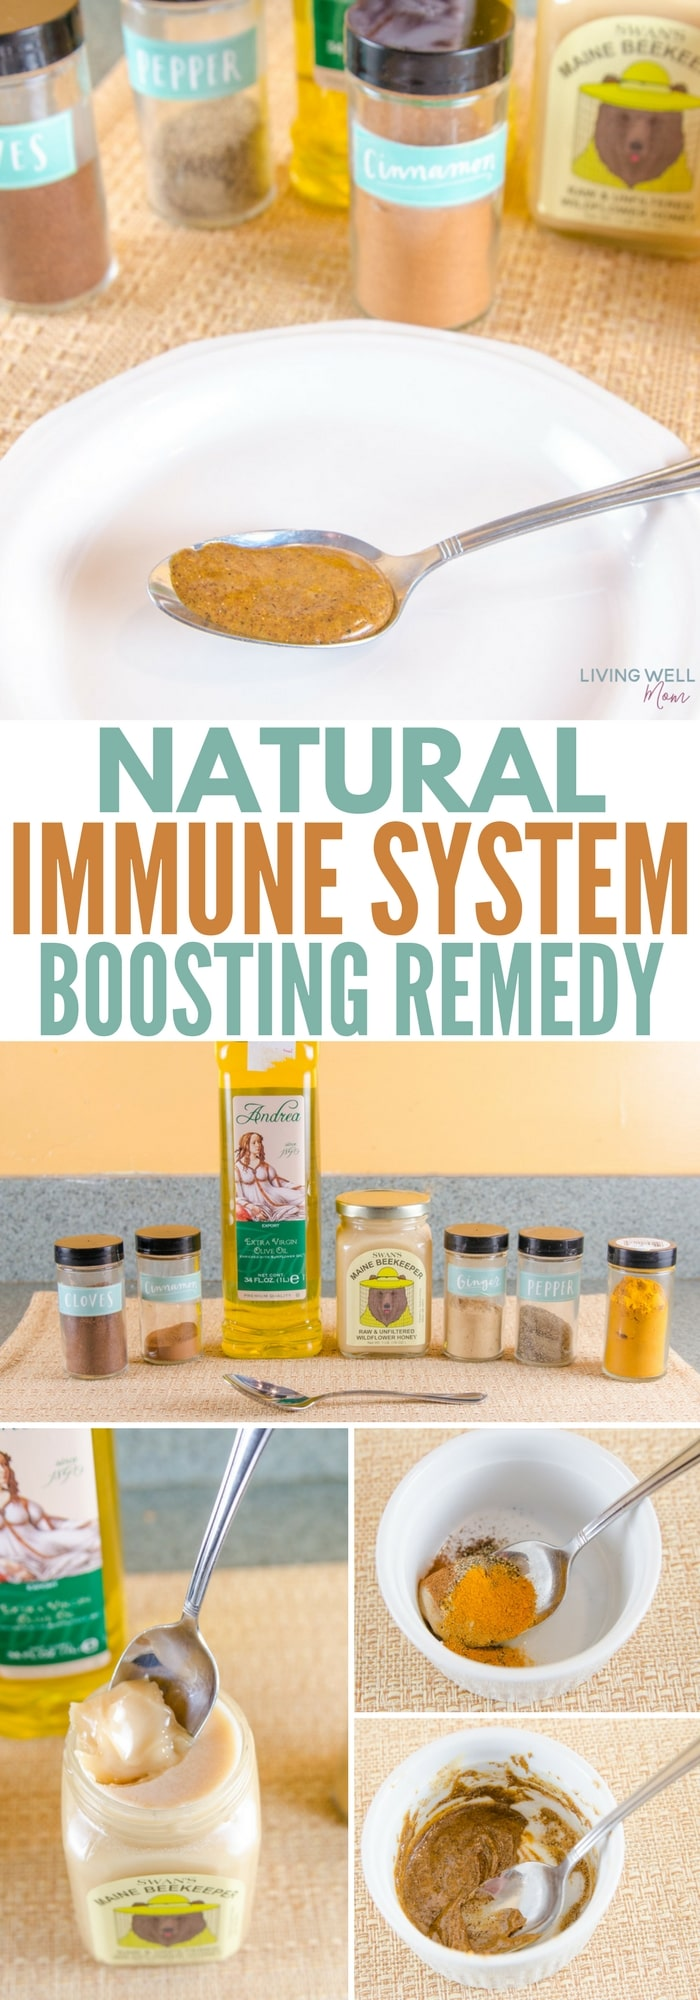 how to get a better immune system